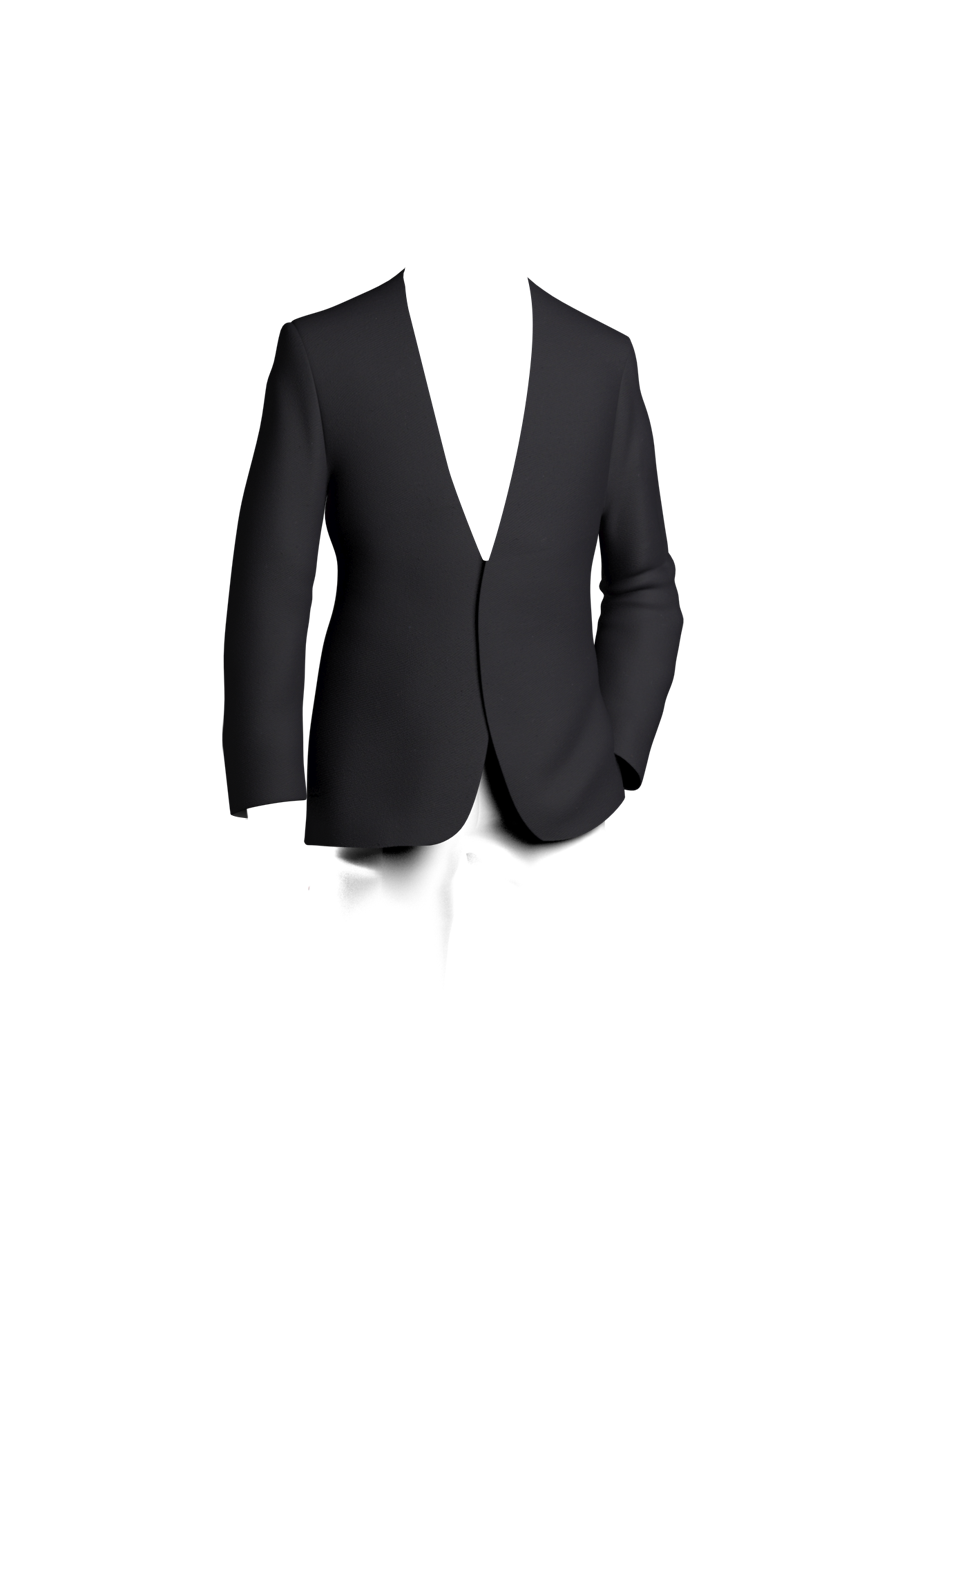 Drawing jackets guy outfit. Design your own suit